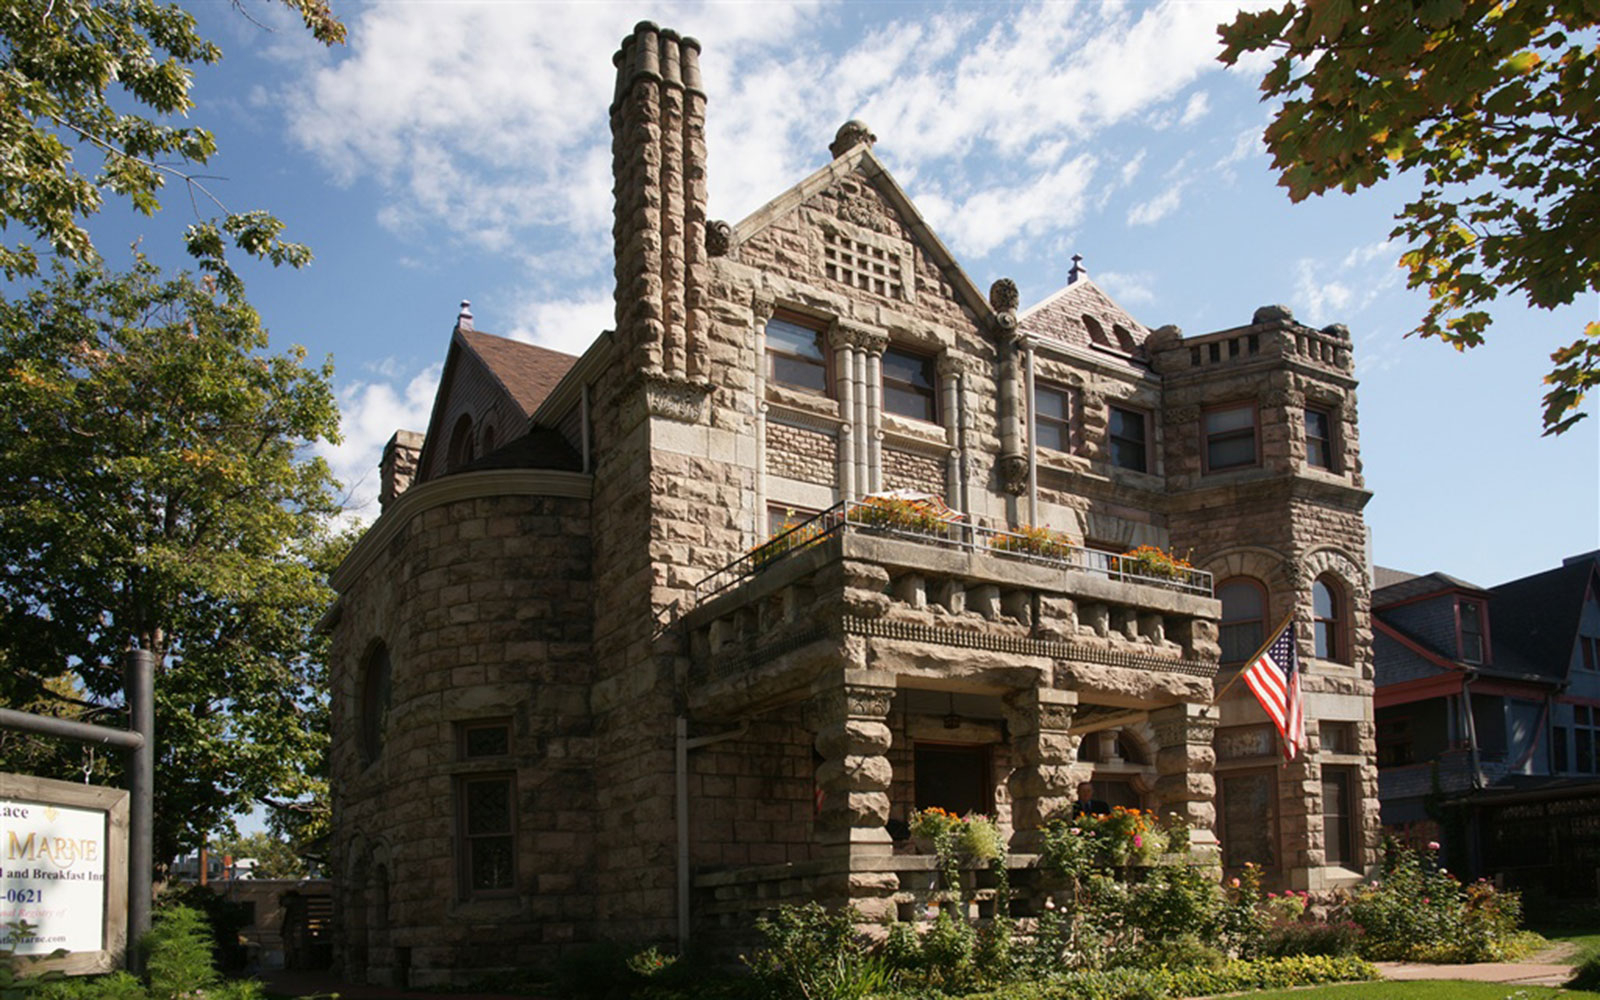 Castle Marne Bed & Breakfast Inn